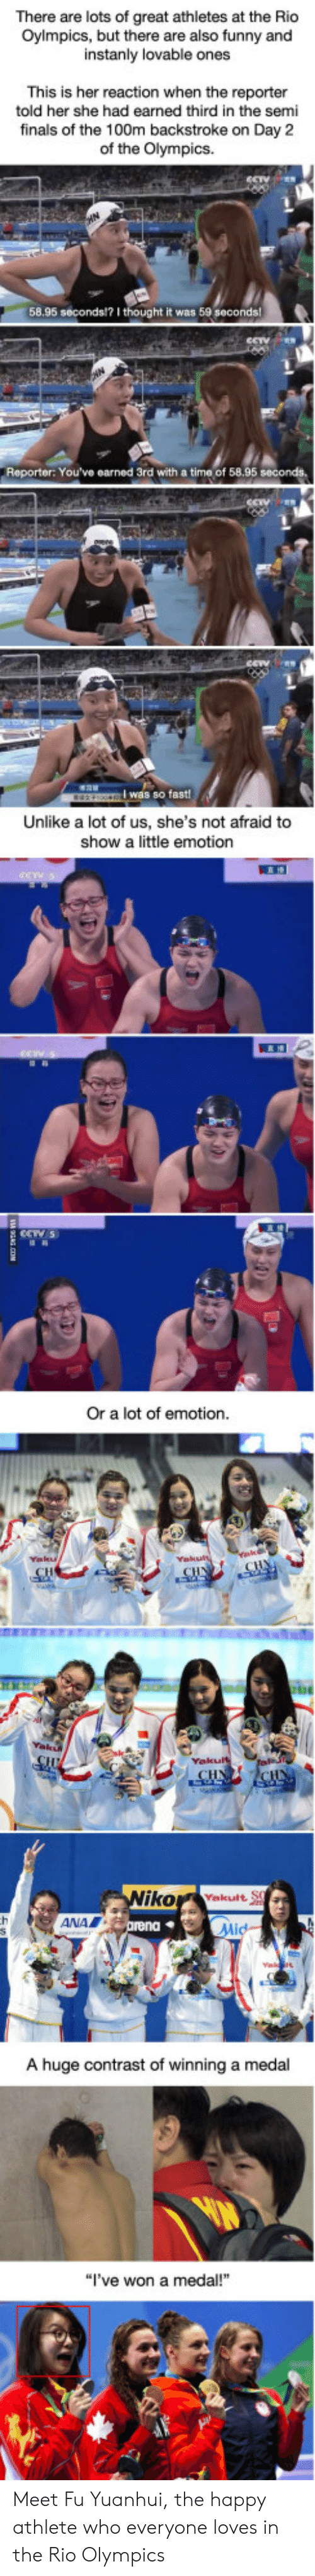 """Rio Olympics: There are lots of great athletes at the Rio  Oylmpics, but there are also funny and  instanly lovable ones  This is her reaction when the reporter  told her she had earned third in the semi  finals of the 100m backstroke on Day 2  of the Olympics.  58.95 seconds?I thought it was 59 seconds  Reporter: You've earned 3rd with a time of 58.95 seconds.  Unlike a lot of us, she's not afraid to  show a little emotion  Or a lot of emotion  ANA  A huge contrast of winning a medal  """"l've won a medal!"""" Meet Fu Yuanhui, the happy athlete who everyone loves in the Rio Olympics"""